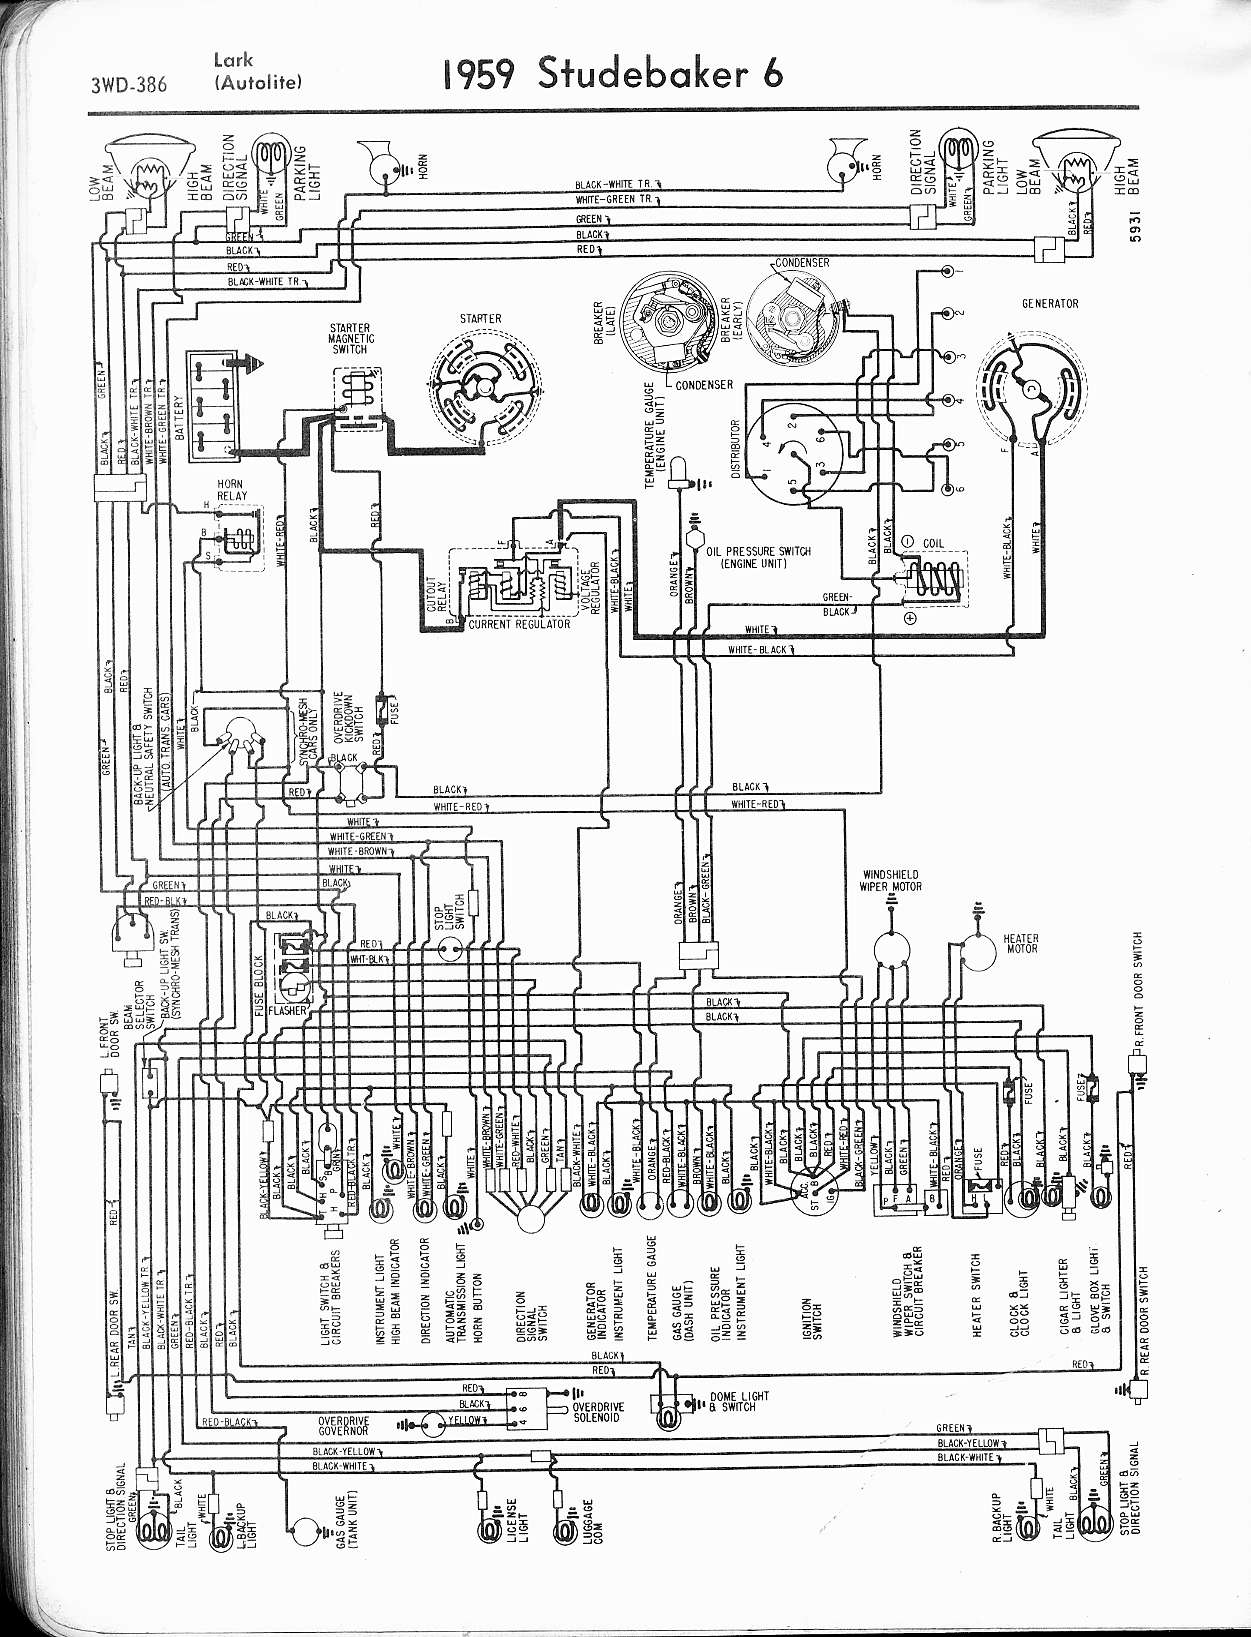 hight resolution of wiring diagram for 1962 studebaker 6 lark wiring diagram for youstudebaker wiring diagrams the old car